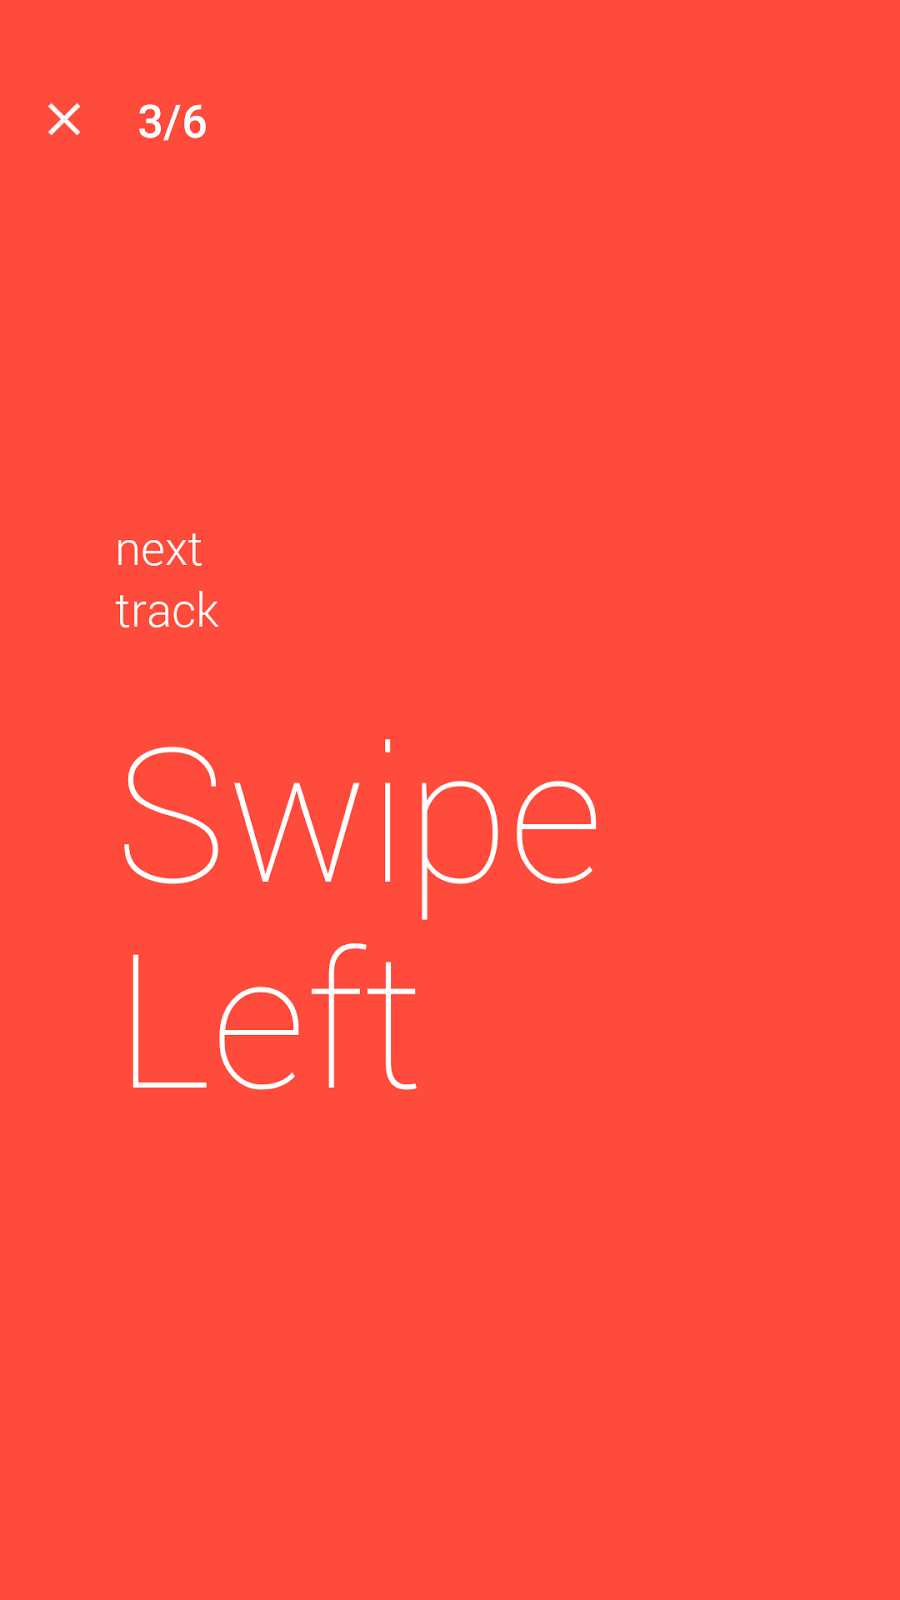 Swipe Left for previous track